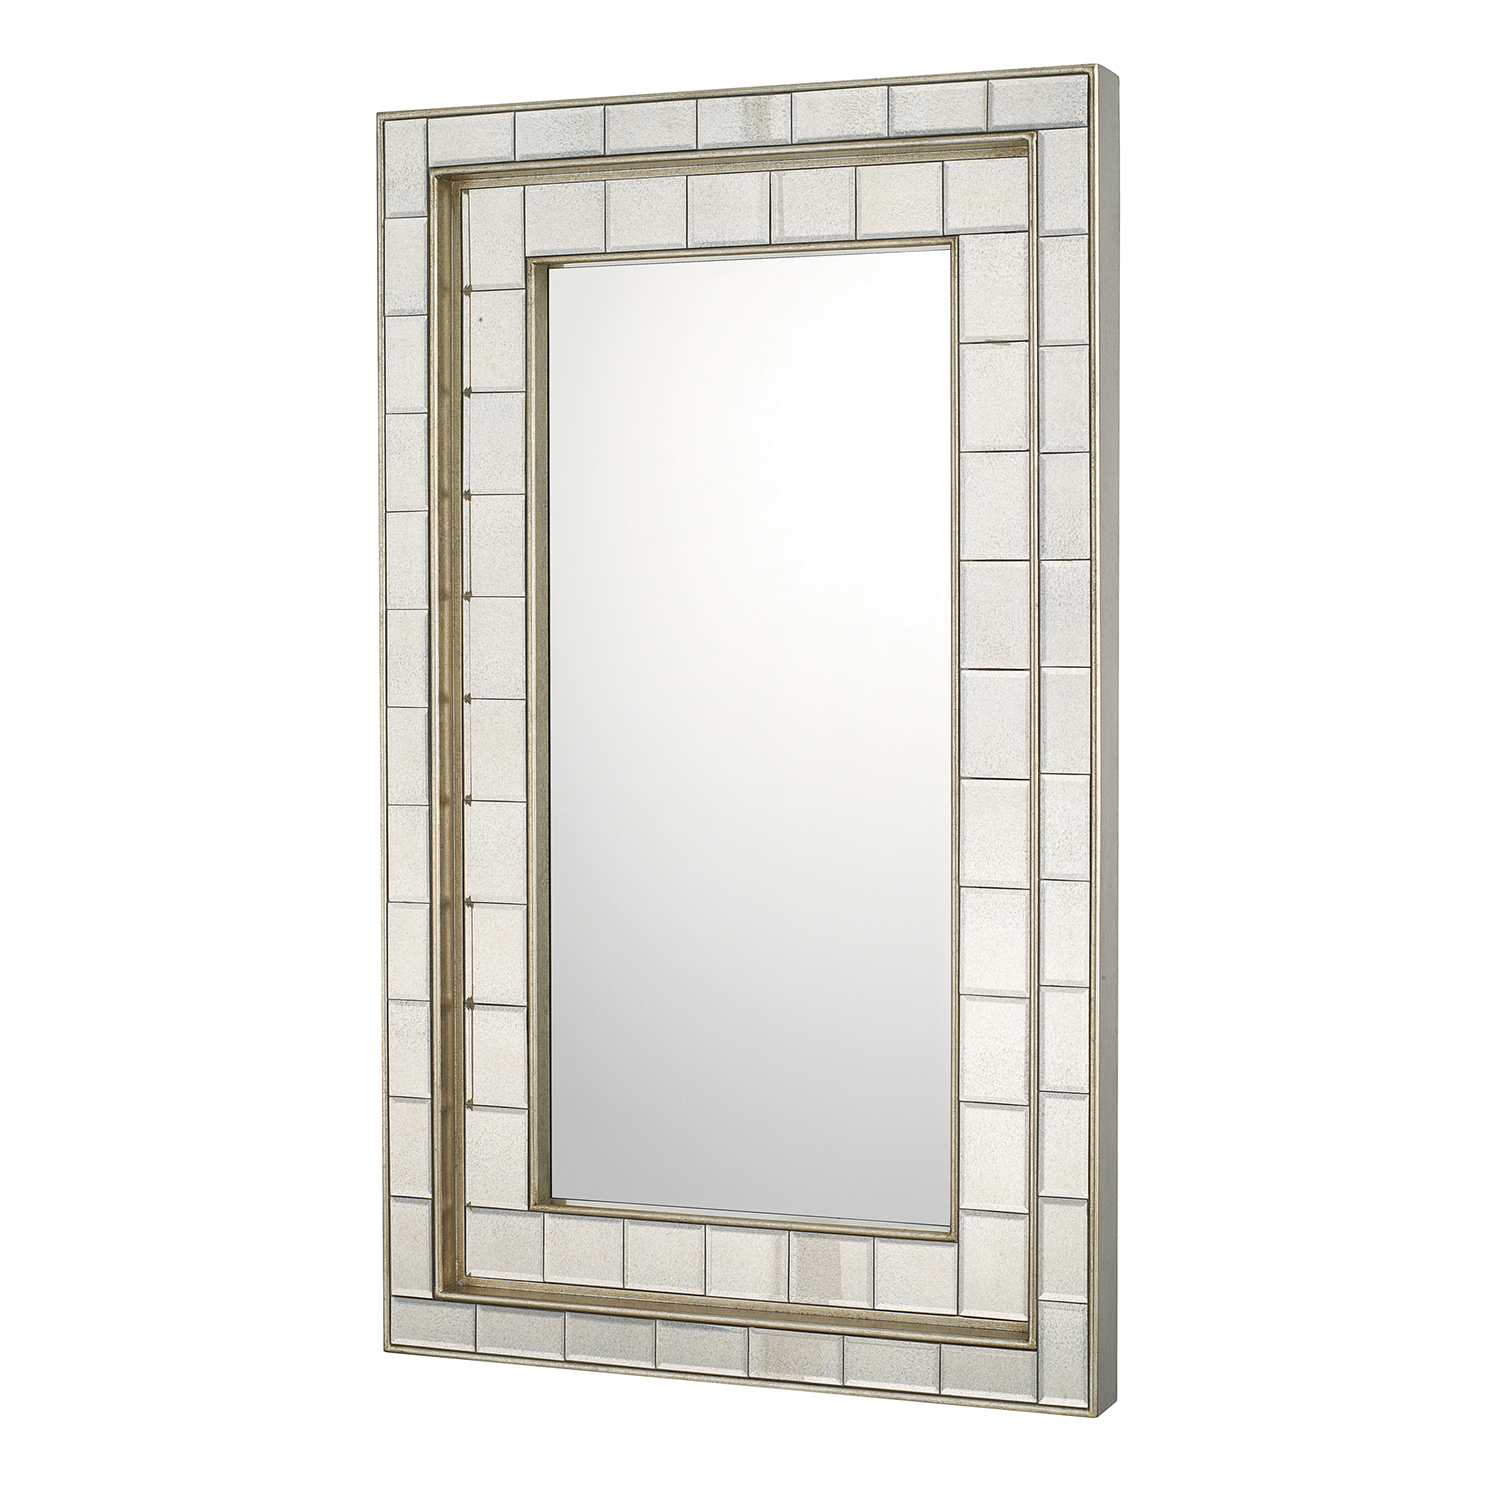 Decorative Mirror from the Mirrors collection by Capital Lighting 716901MM